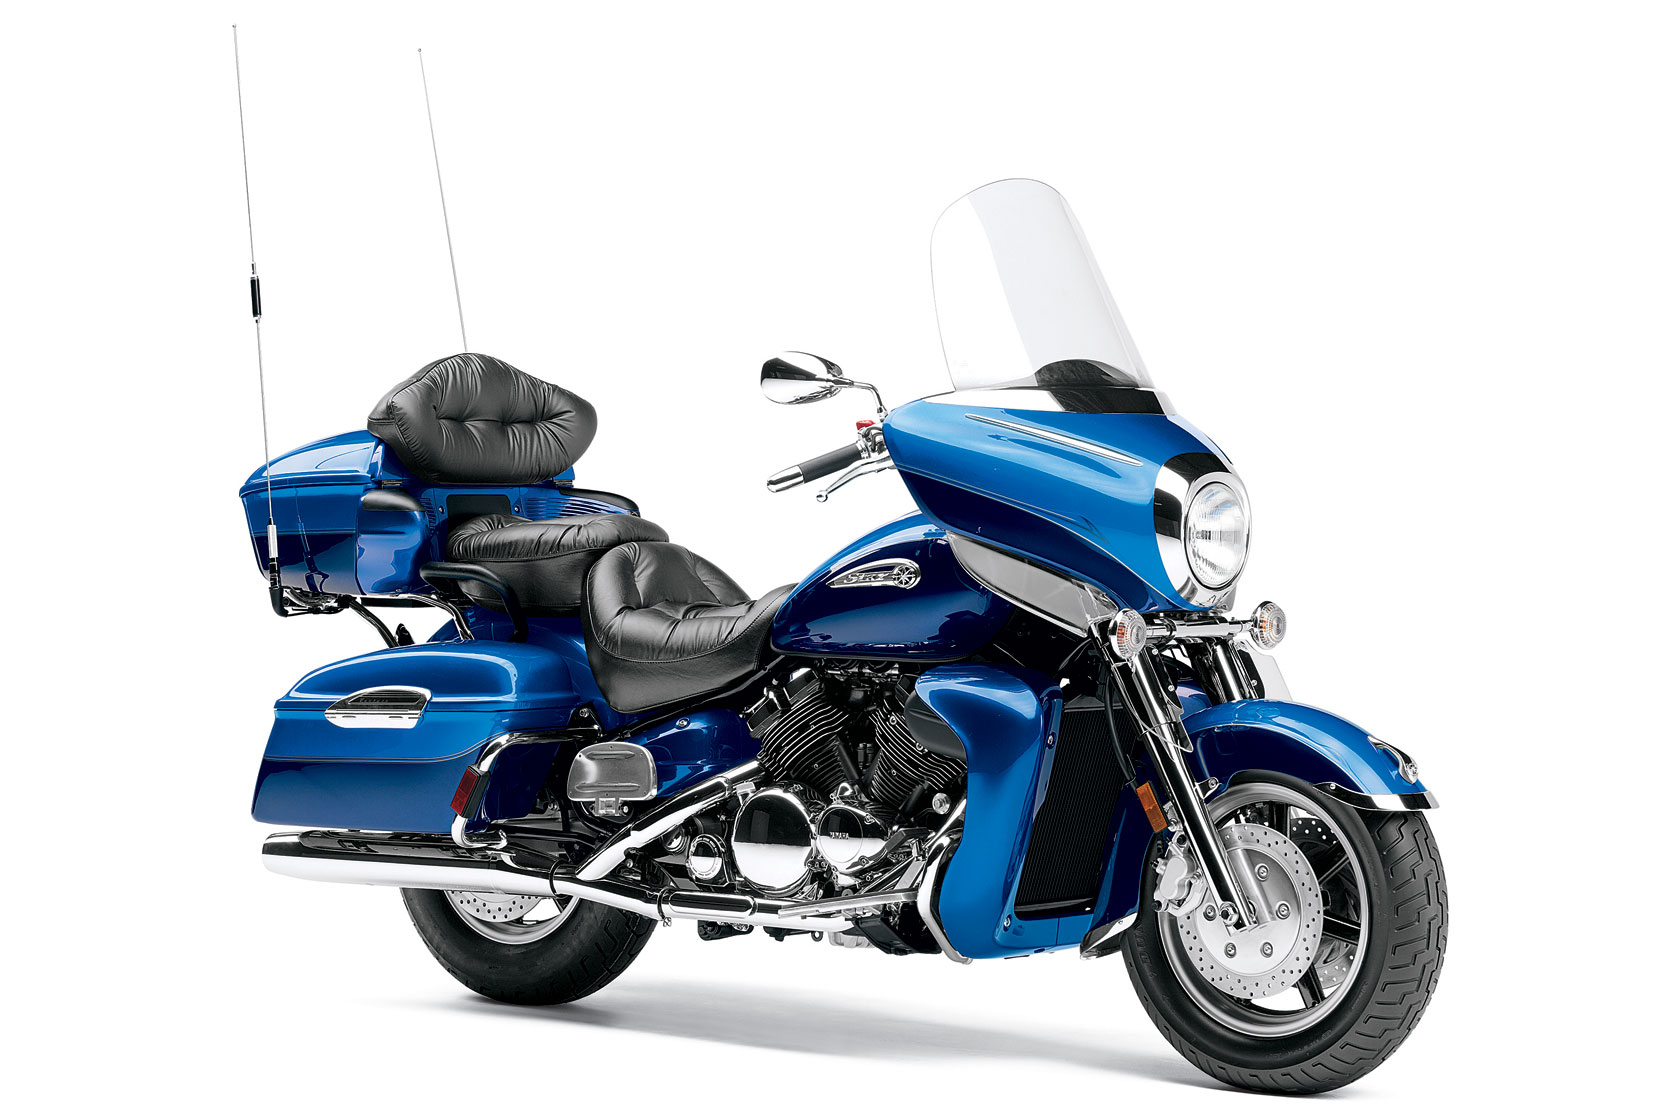 Yamaha Royal Star Venture S 2011 #1